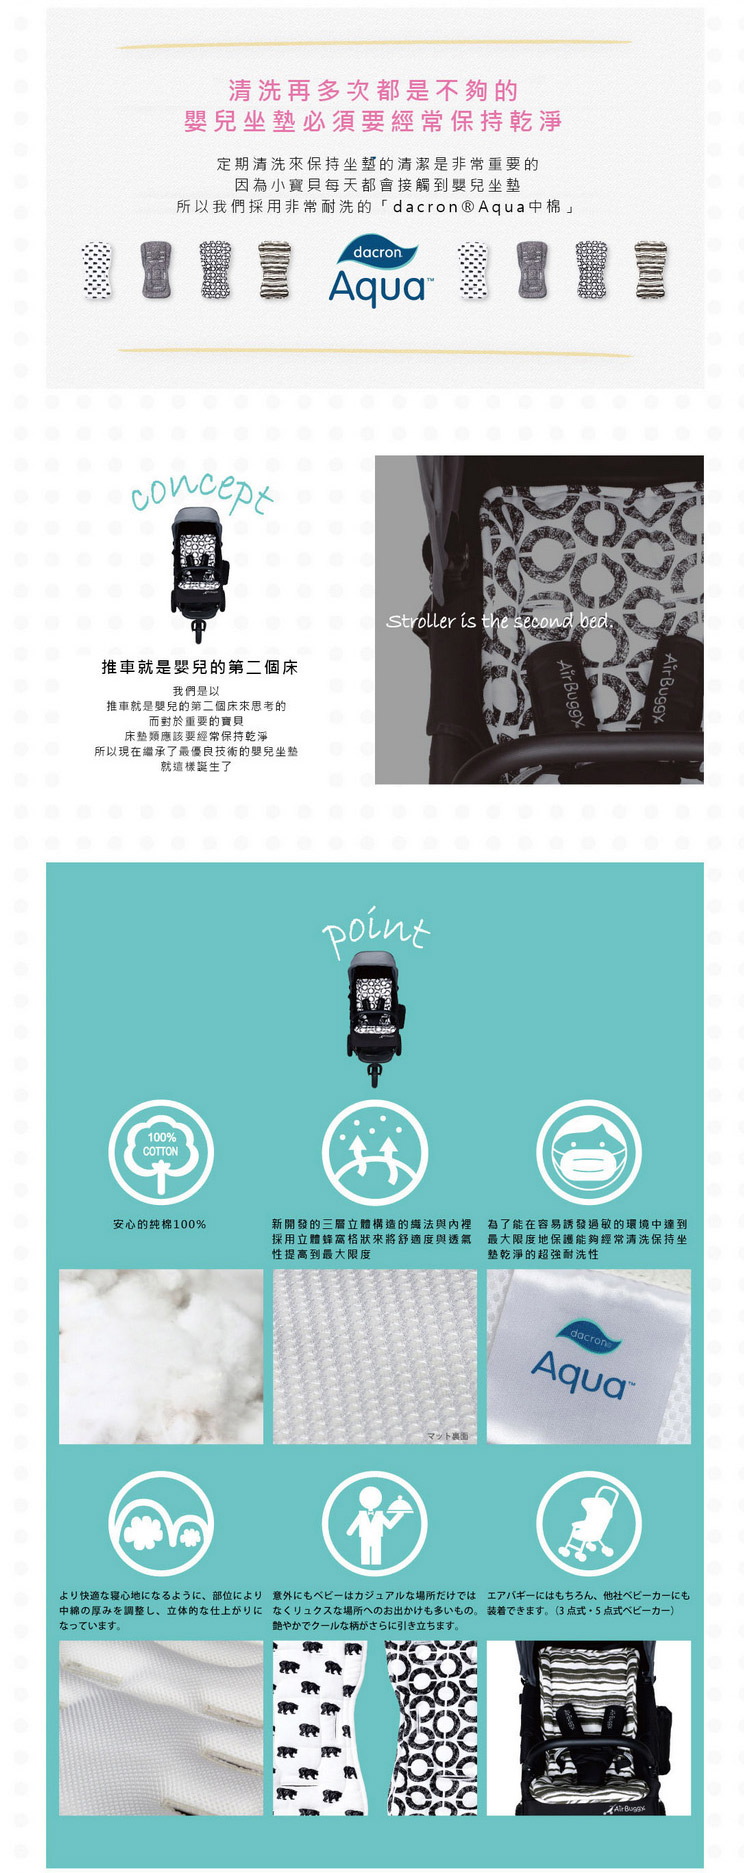 airbuggy-stroller-mat-monotone-info09